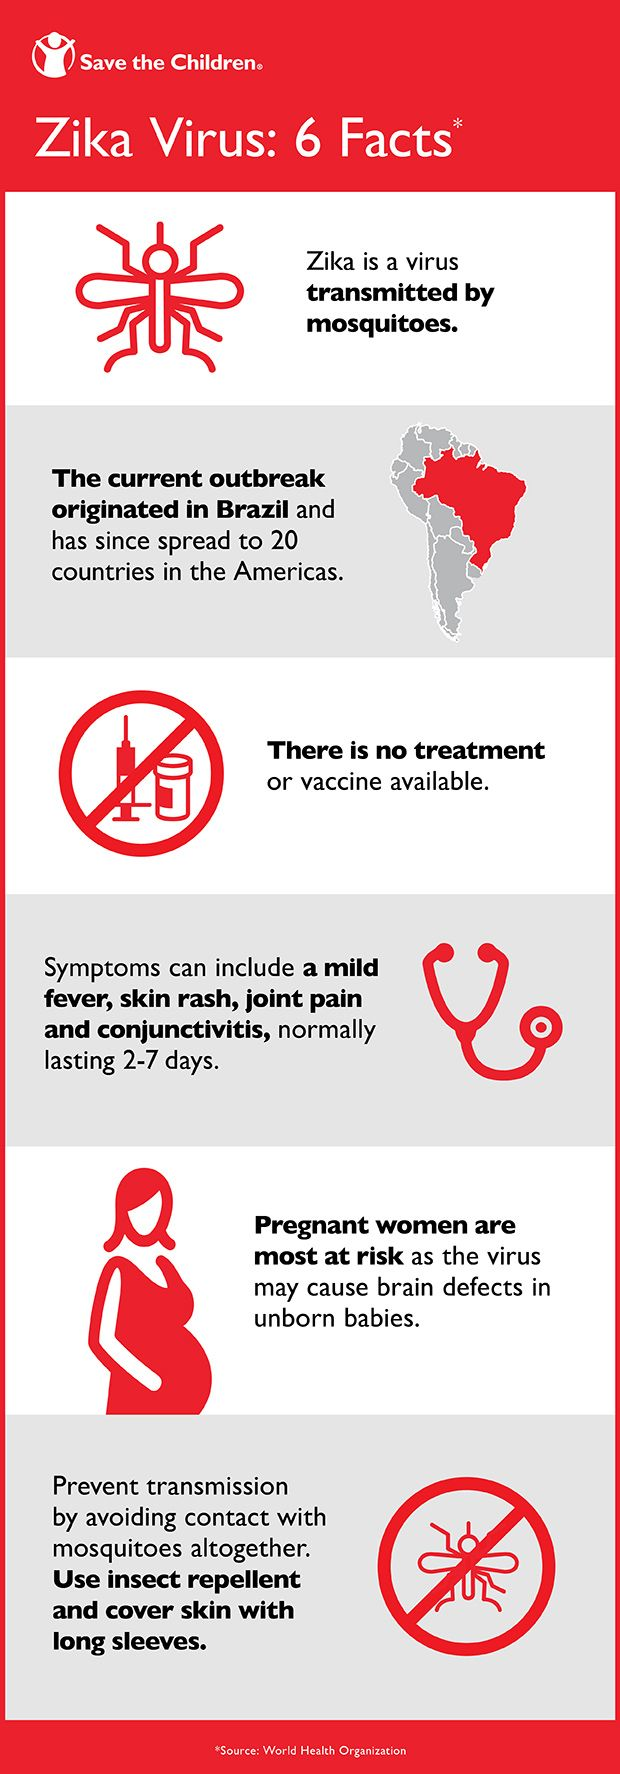 The World Health Organization (WHO) has declared the Zika virus to be a global public health emergency. Here are some facts about the virus, how it's spread, and how you can protect yourself.